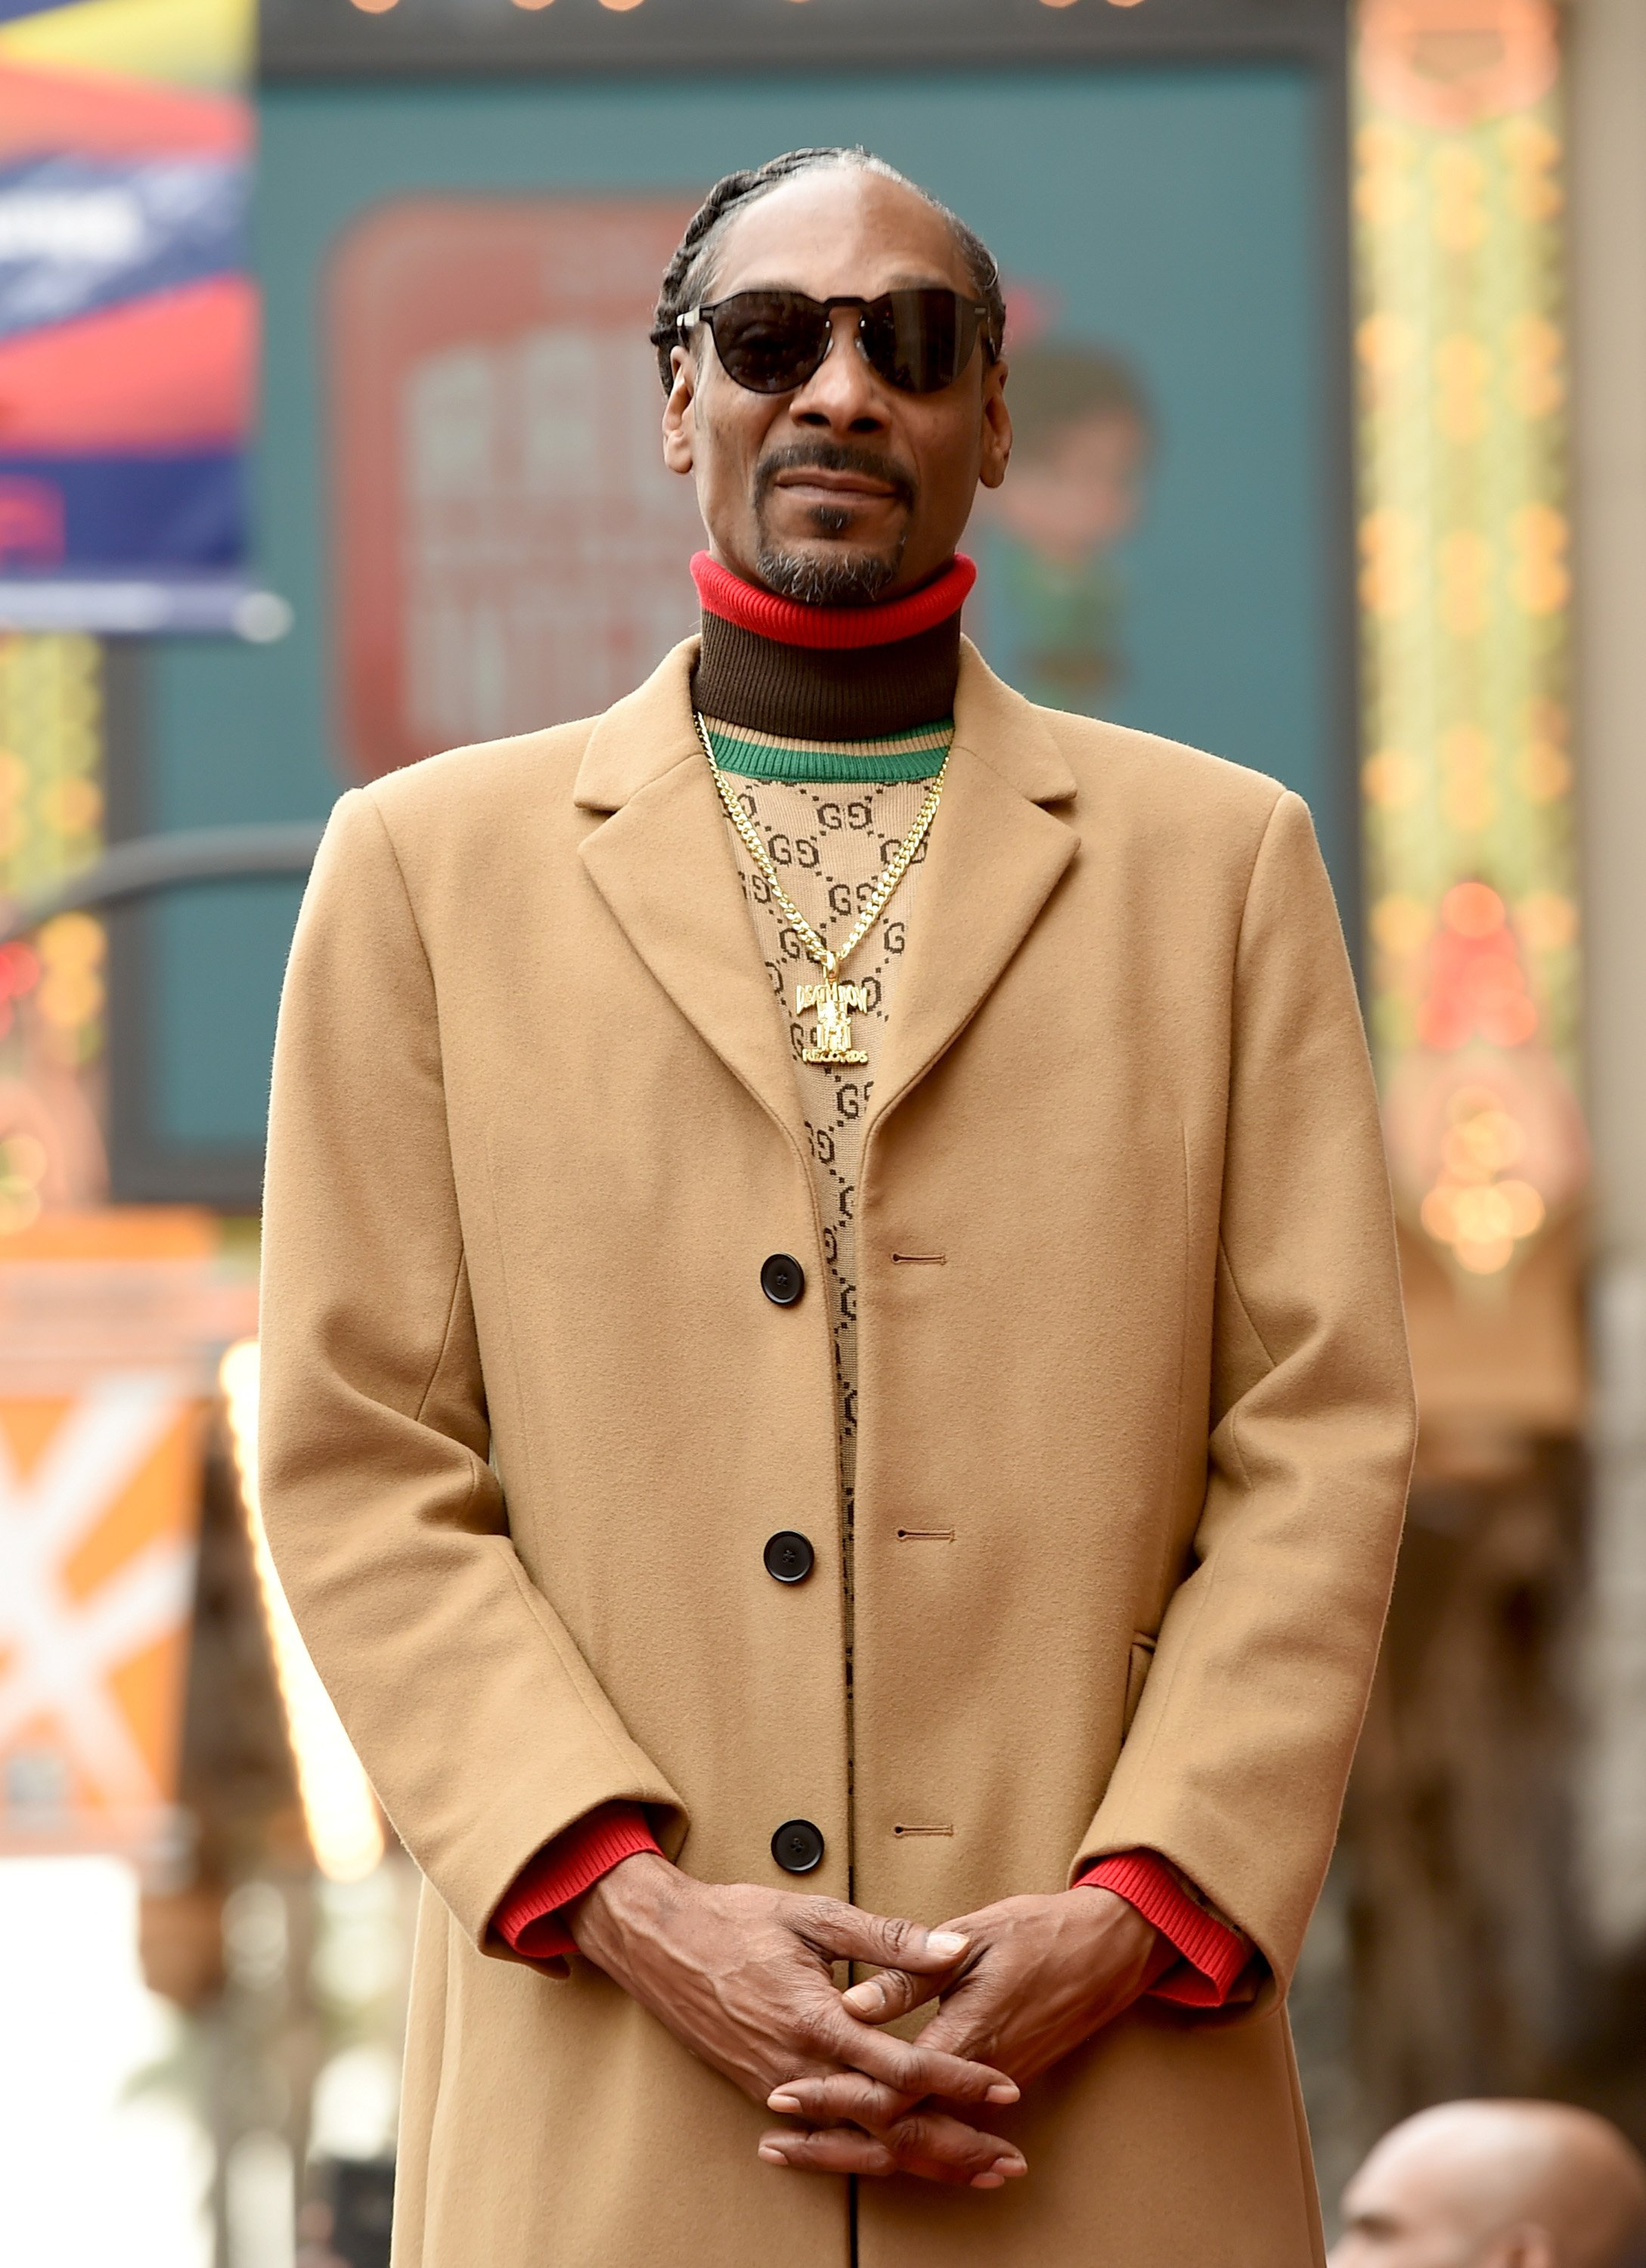 Snoop Dogg getting his star on The Hollywood Walk Of Fame in LA on Nov. 19, 2018   Photo: Getty Images